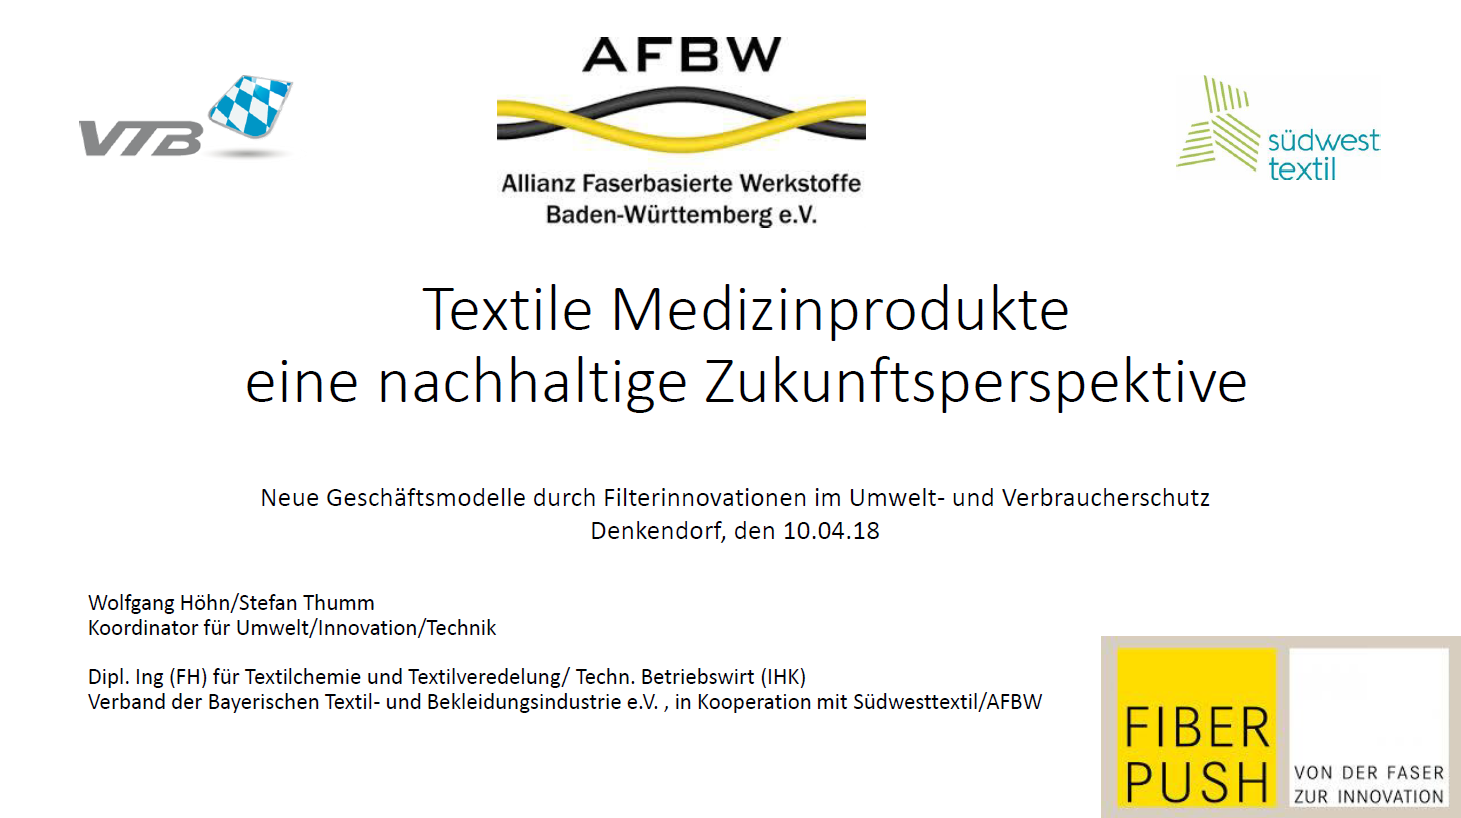 Fact Sheet Textile Medizinprodukte